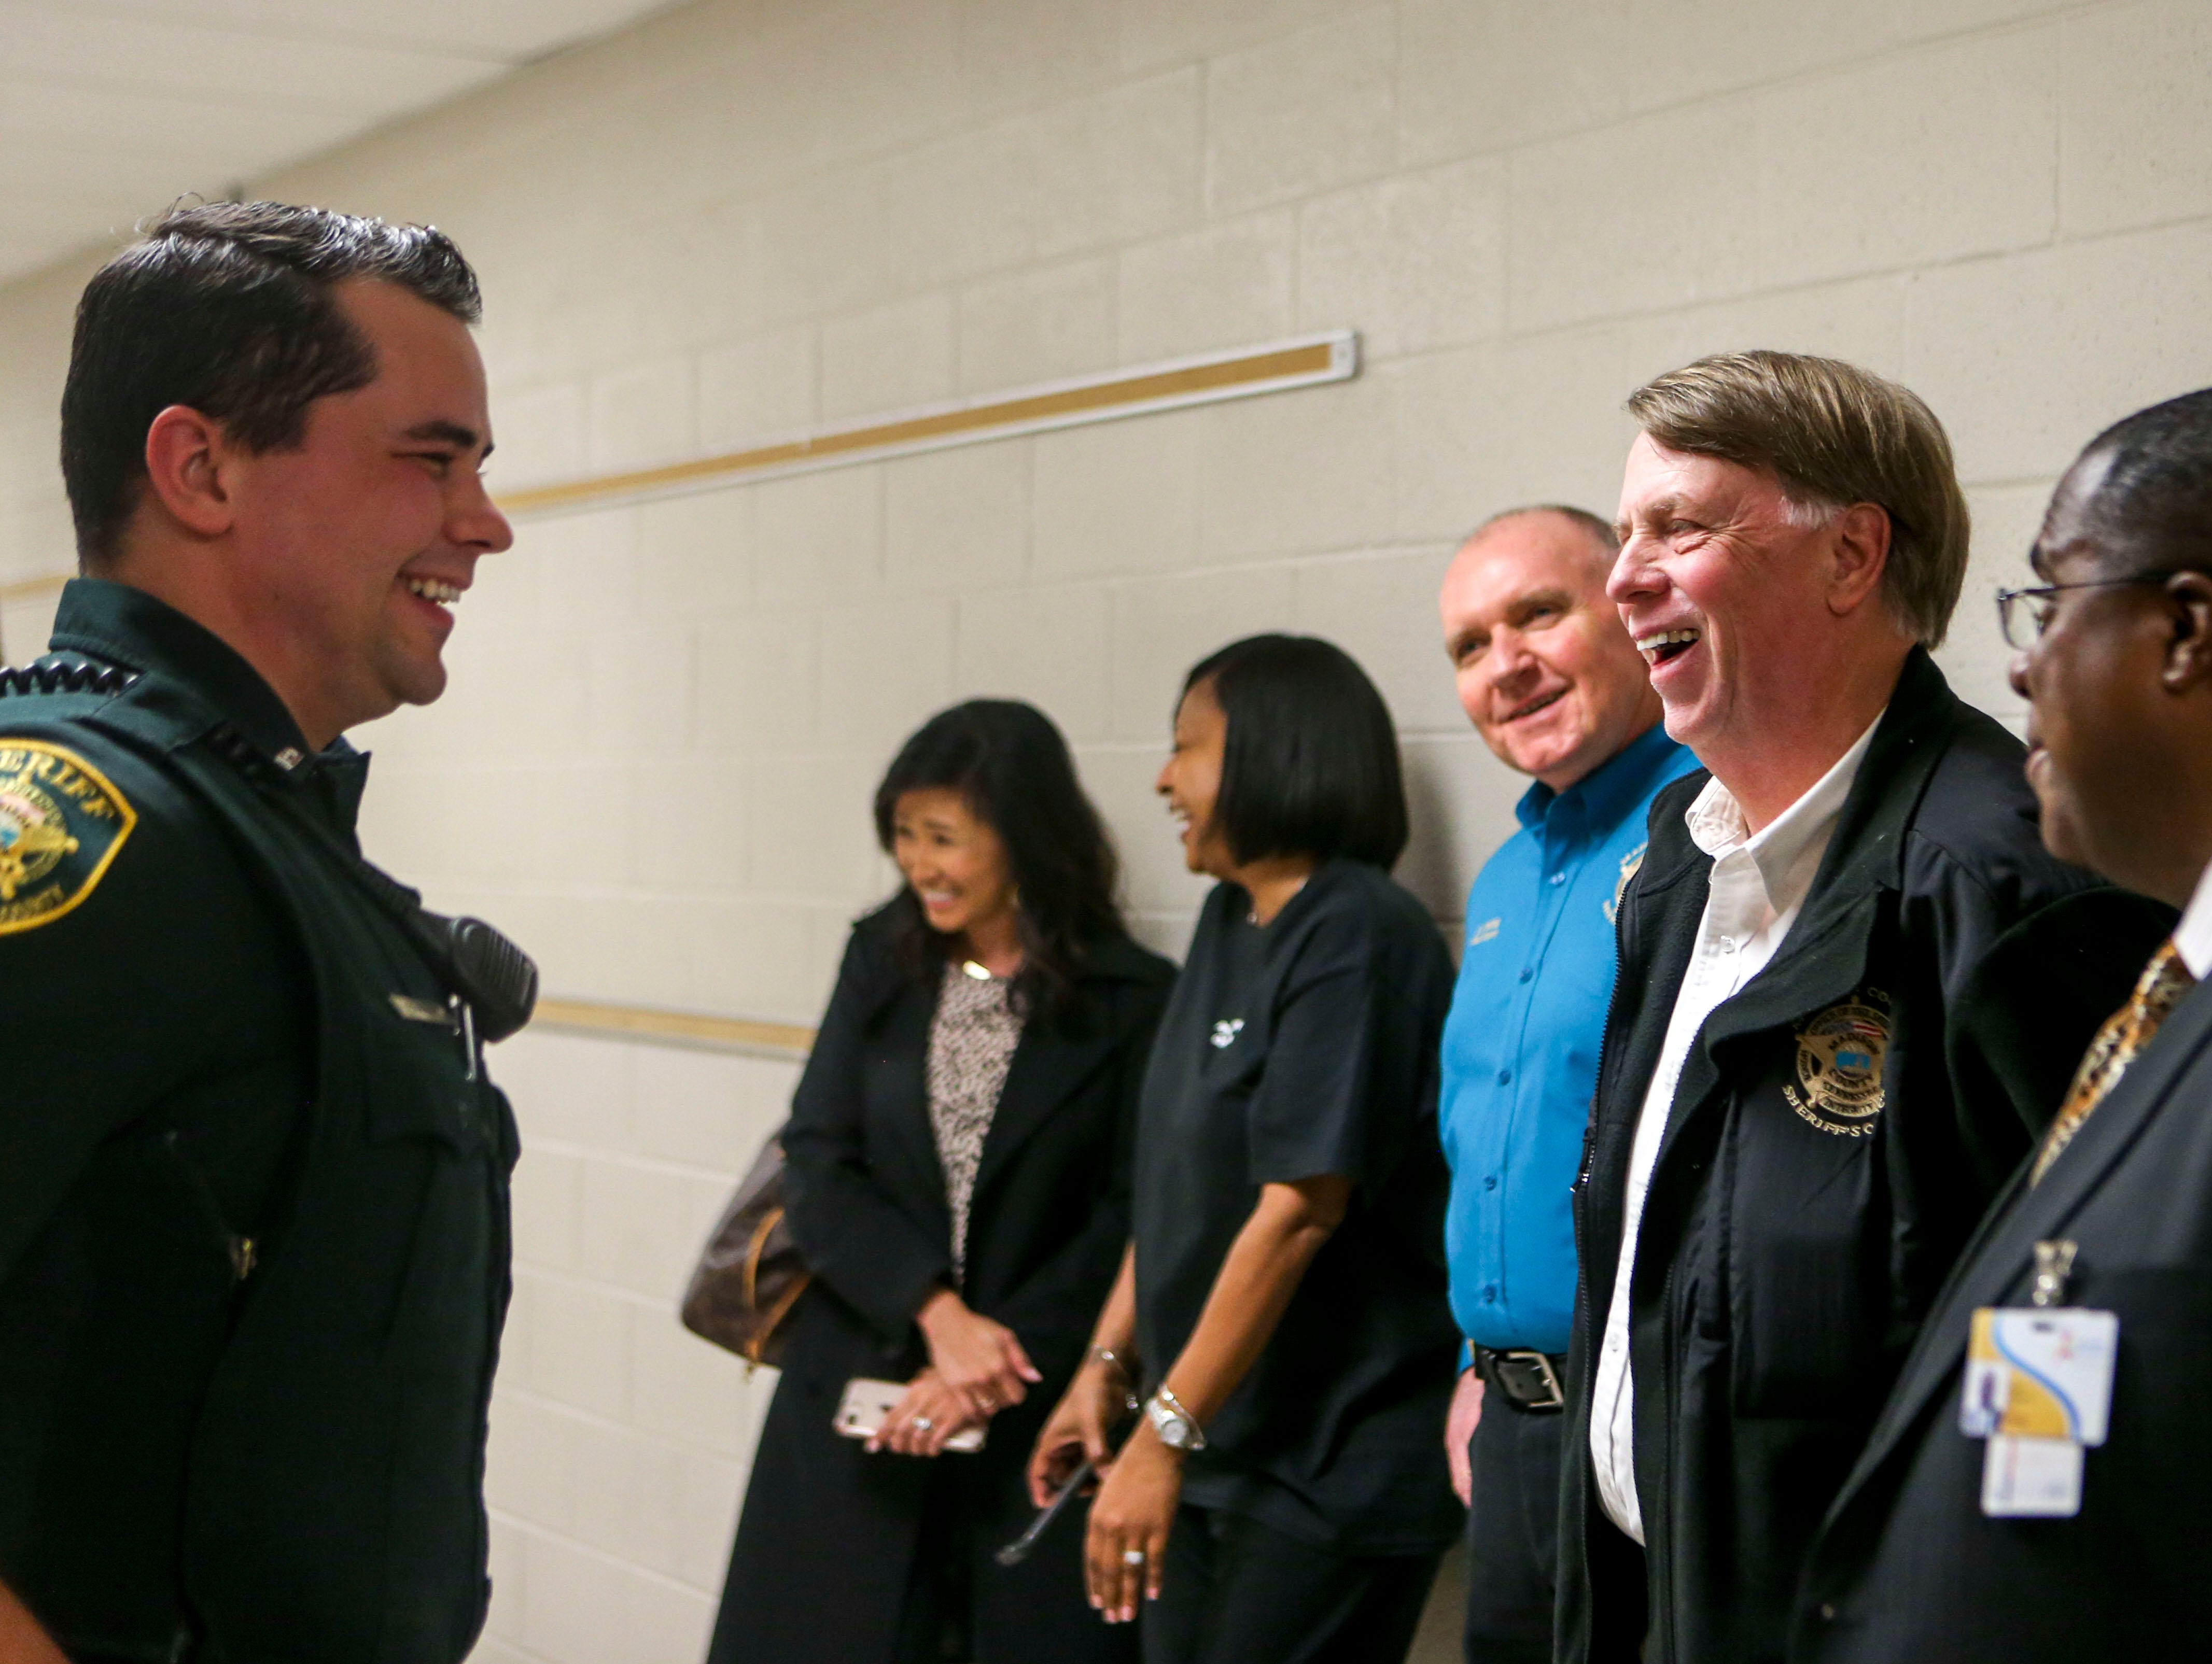 Sheriff John Mehr, right, and deputy William Haley, left, speak with J.C.T. Middle School Principal James Walker at Jackson Careers and Technology Middle School  in Jackson, Tenn., on Friday, Jan. 18, 2019.